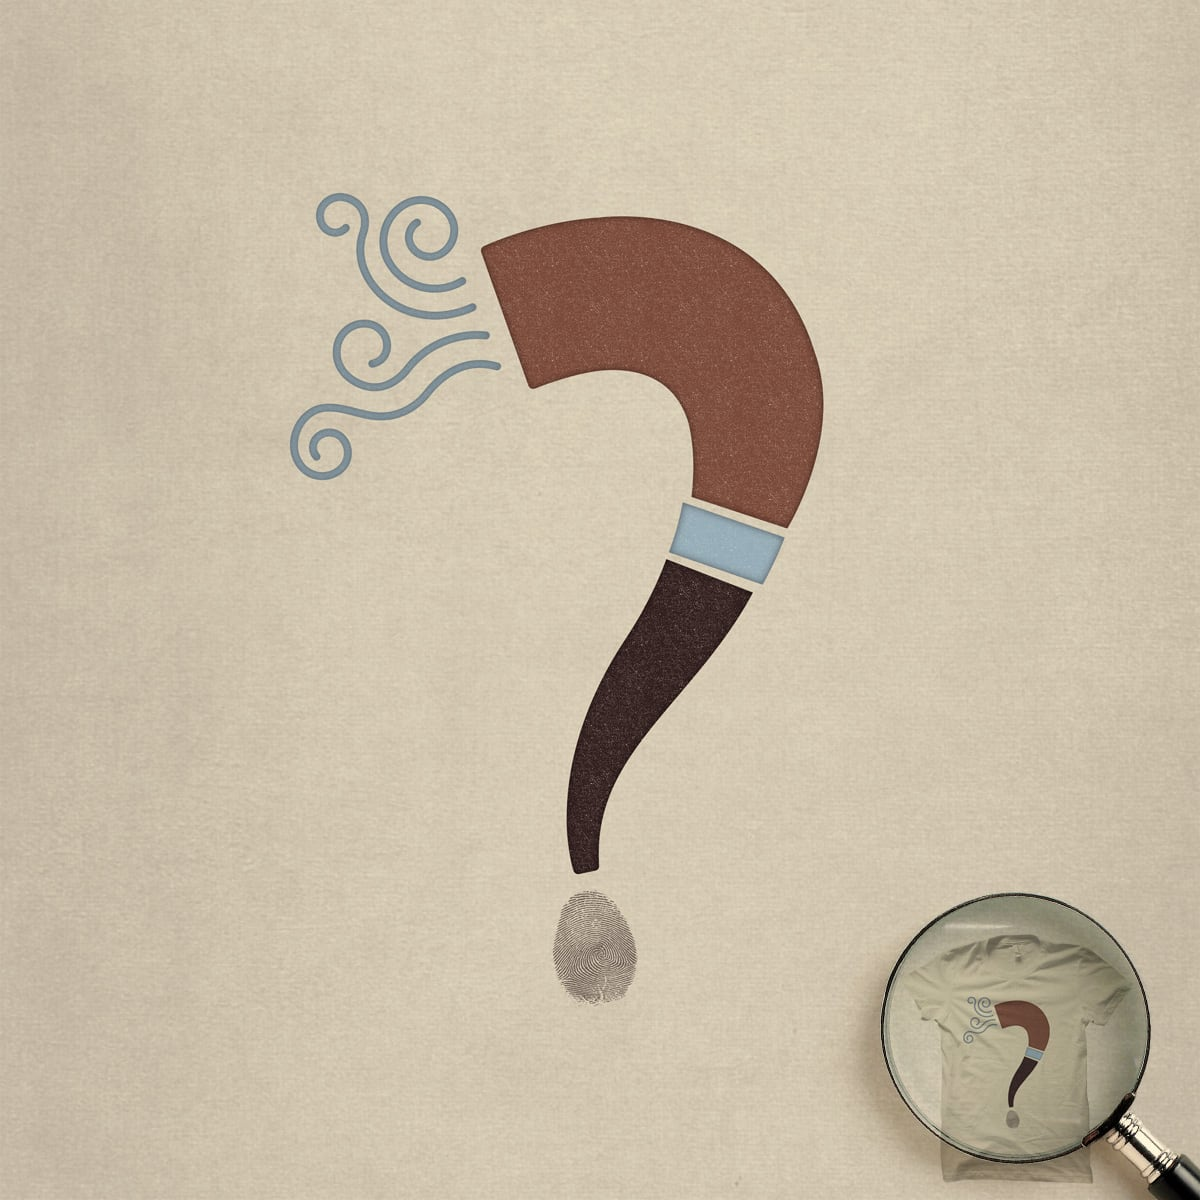 Burning Question by quick-brown-fox on Threadless